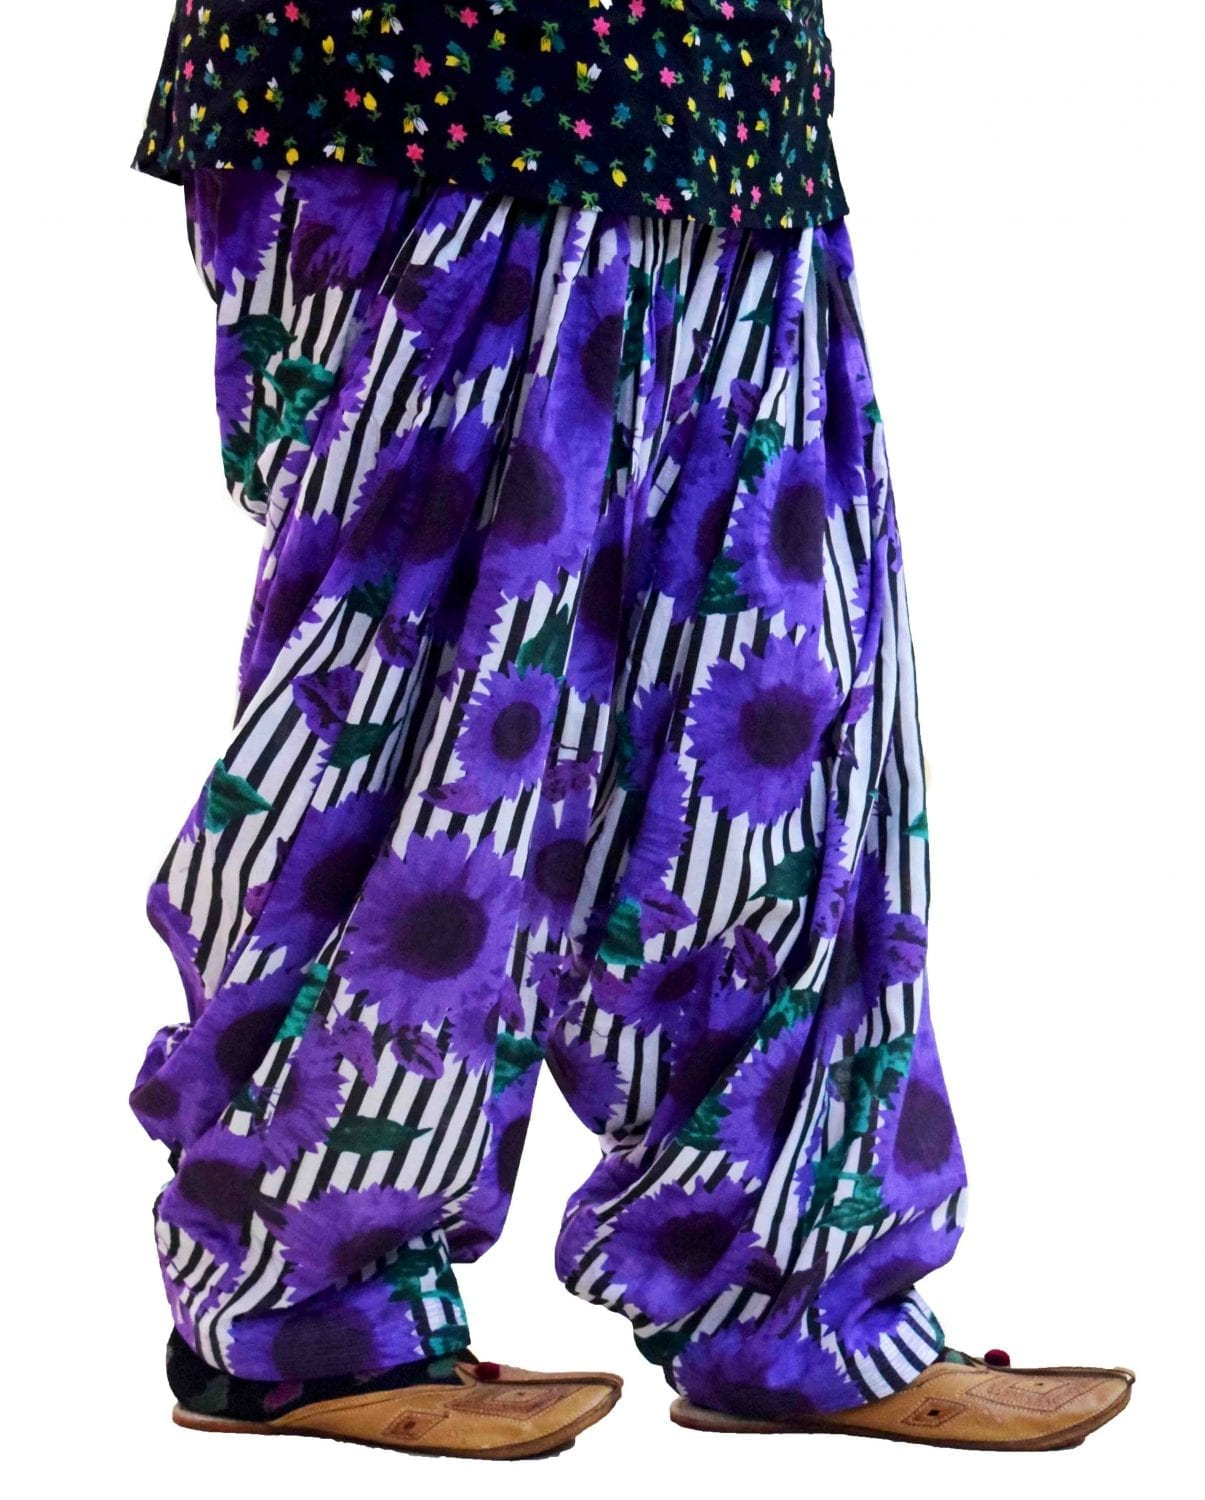 Printed Full Patiala Salwar Limited Edition 100% Pure Cotton Shalwar PPS017 1